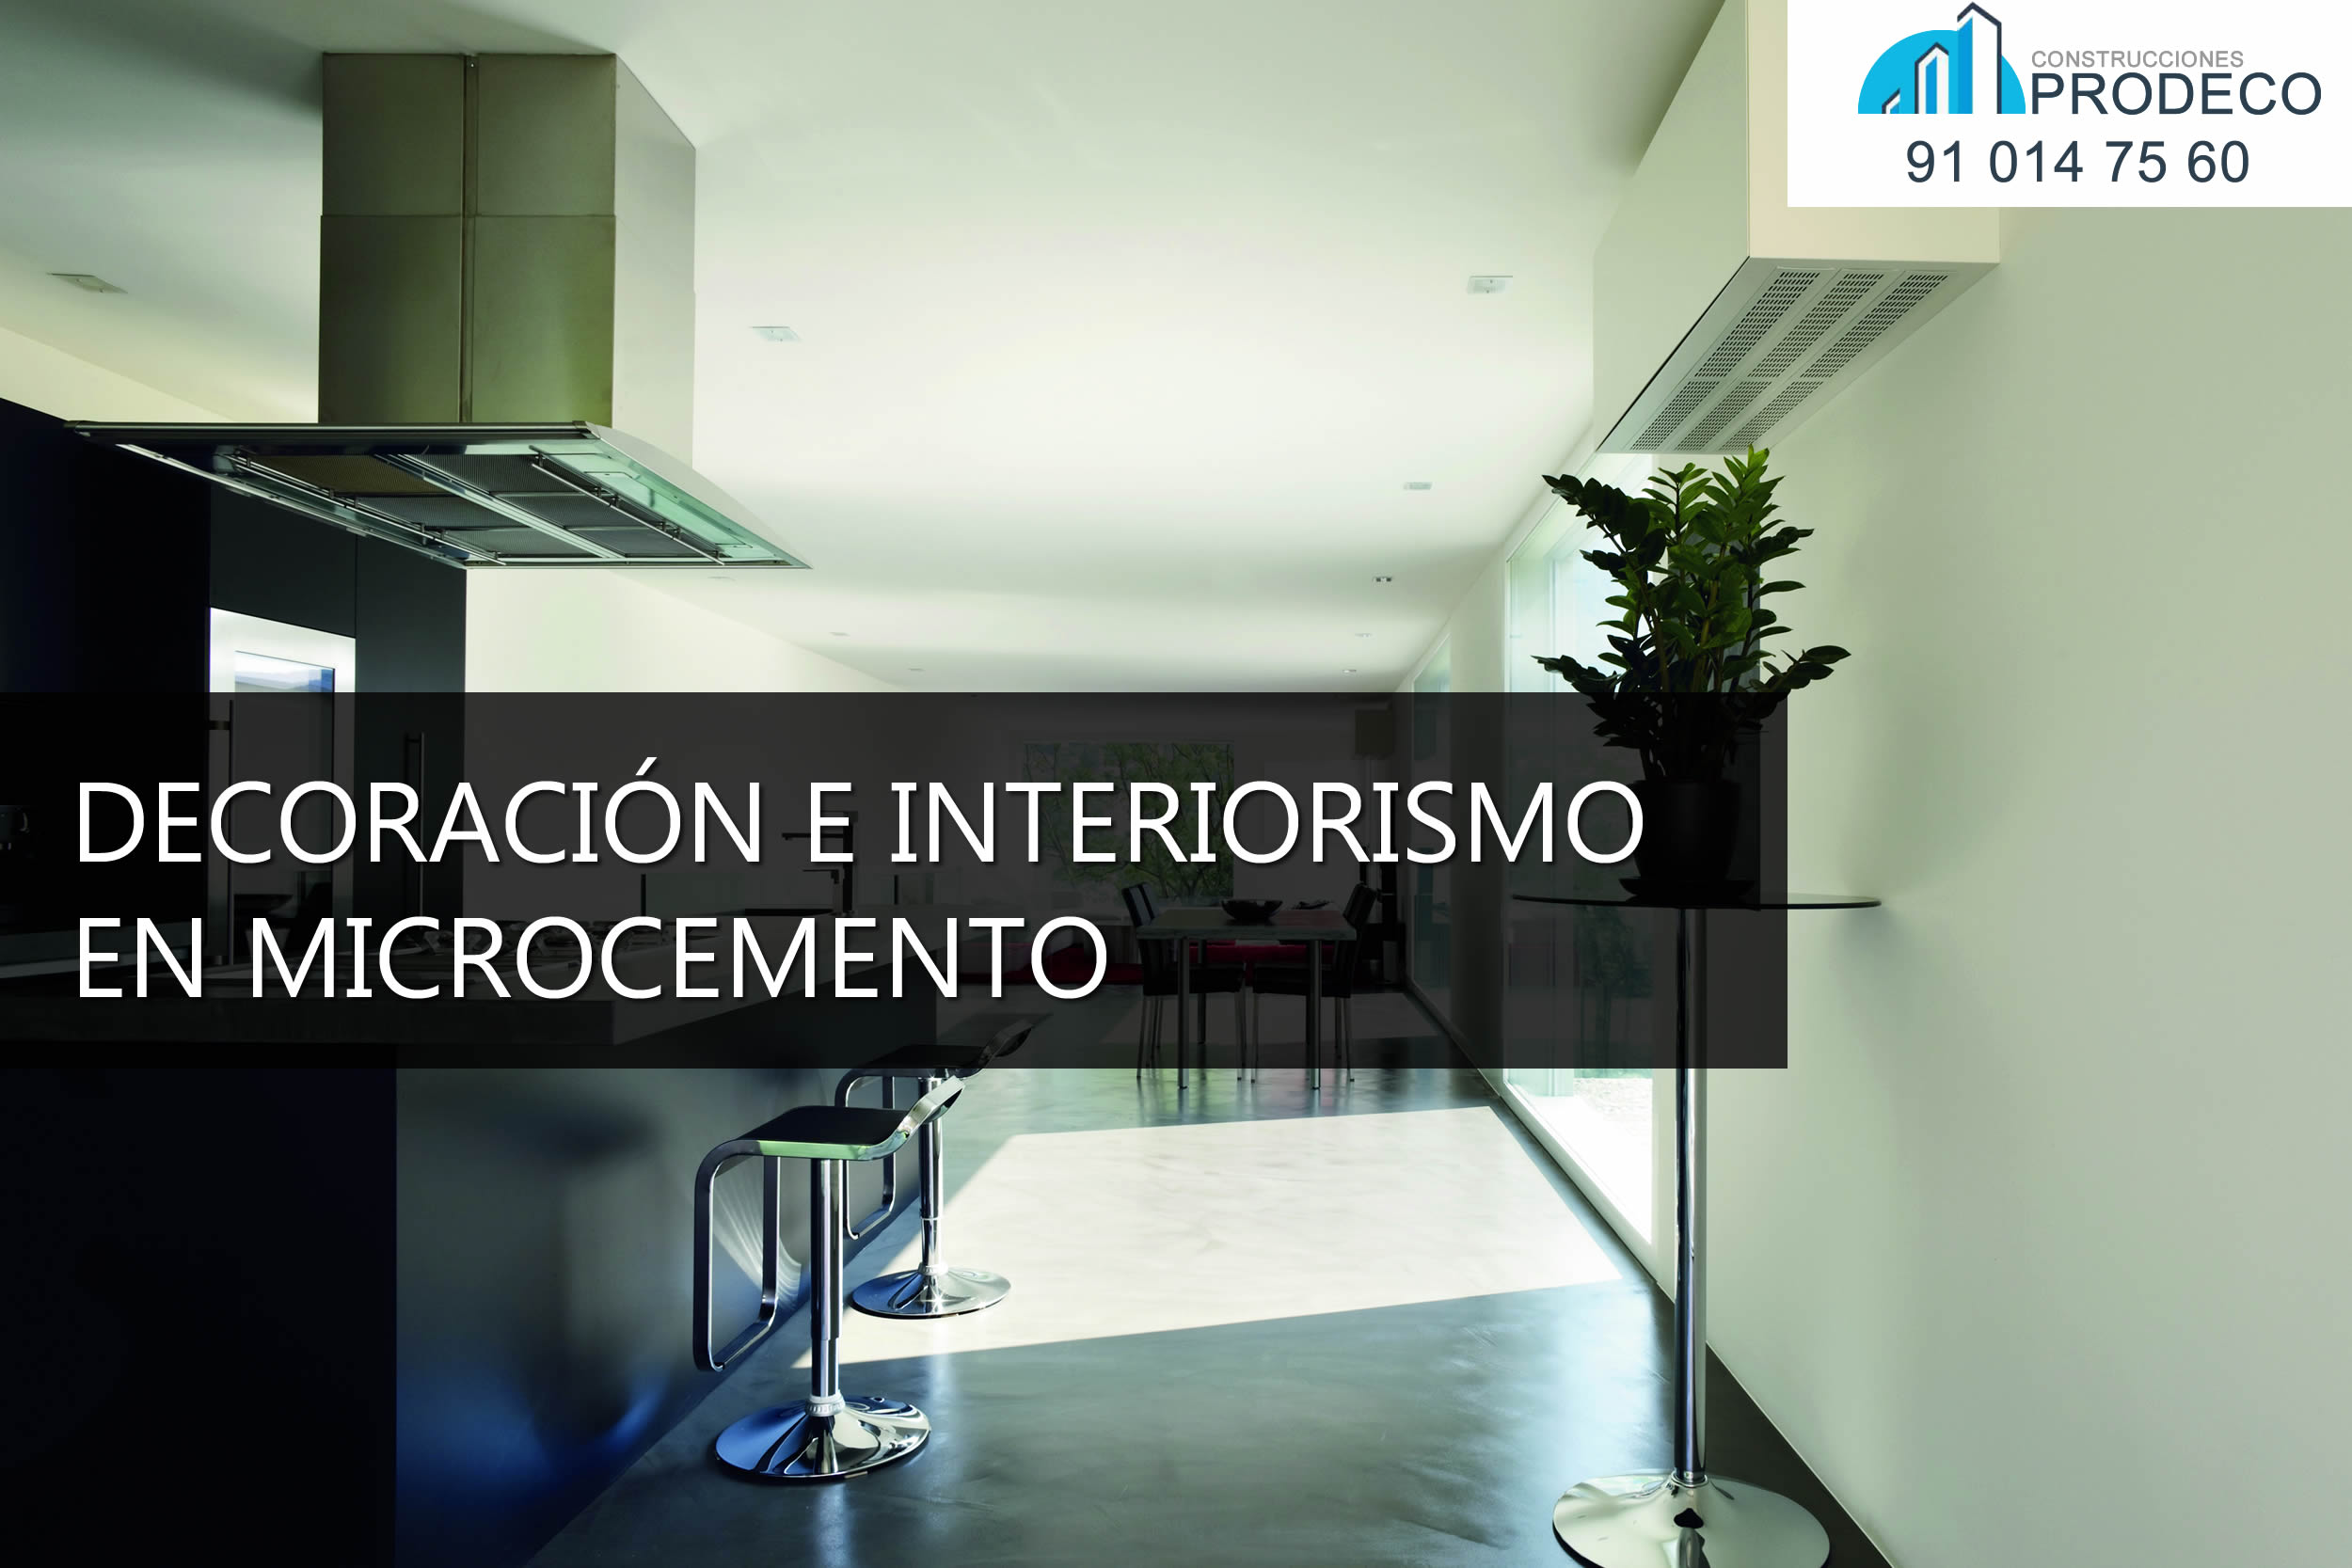 Decoración e Interiorismo en Microcemento